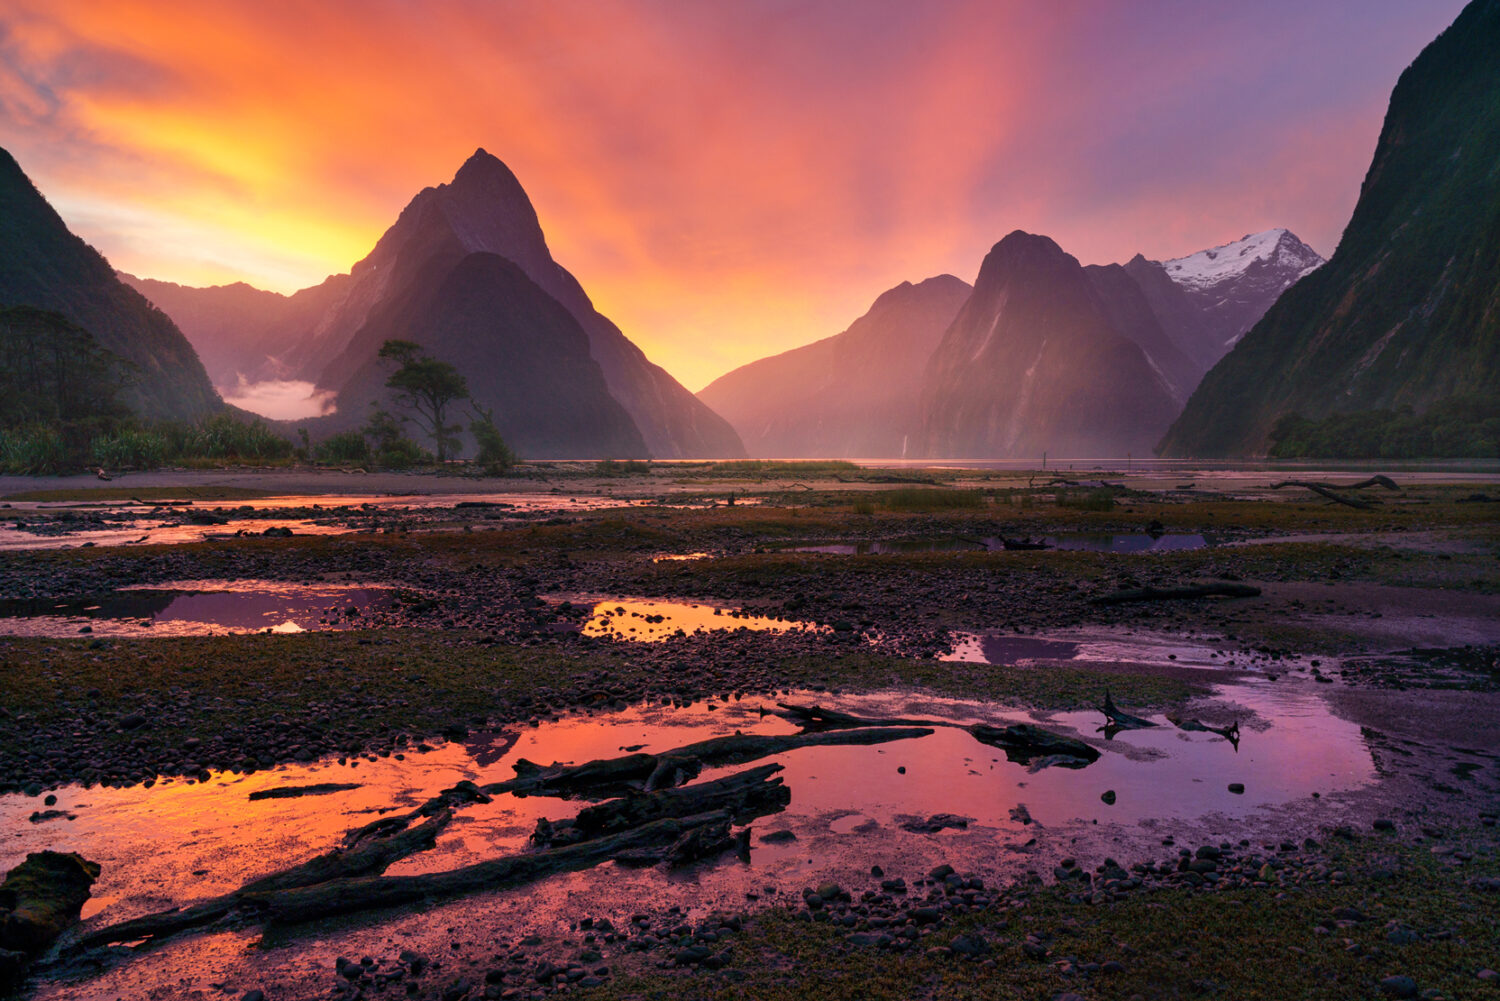 Sunset, Milford Sound New Zealand